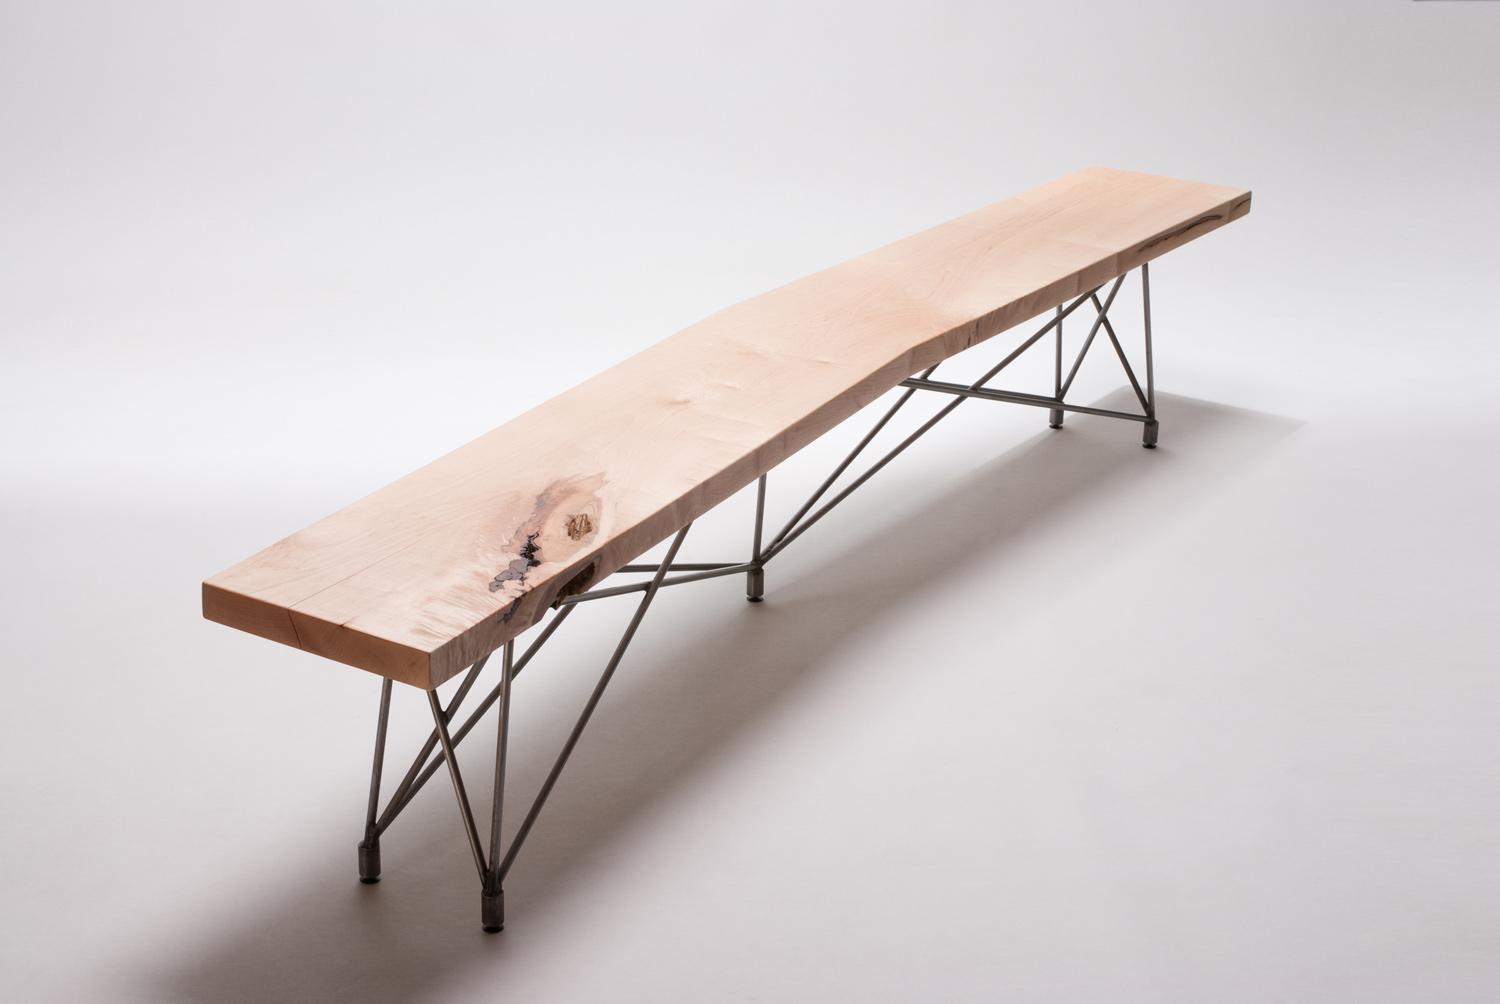 Custom wood + steel mid century modern bench